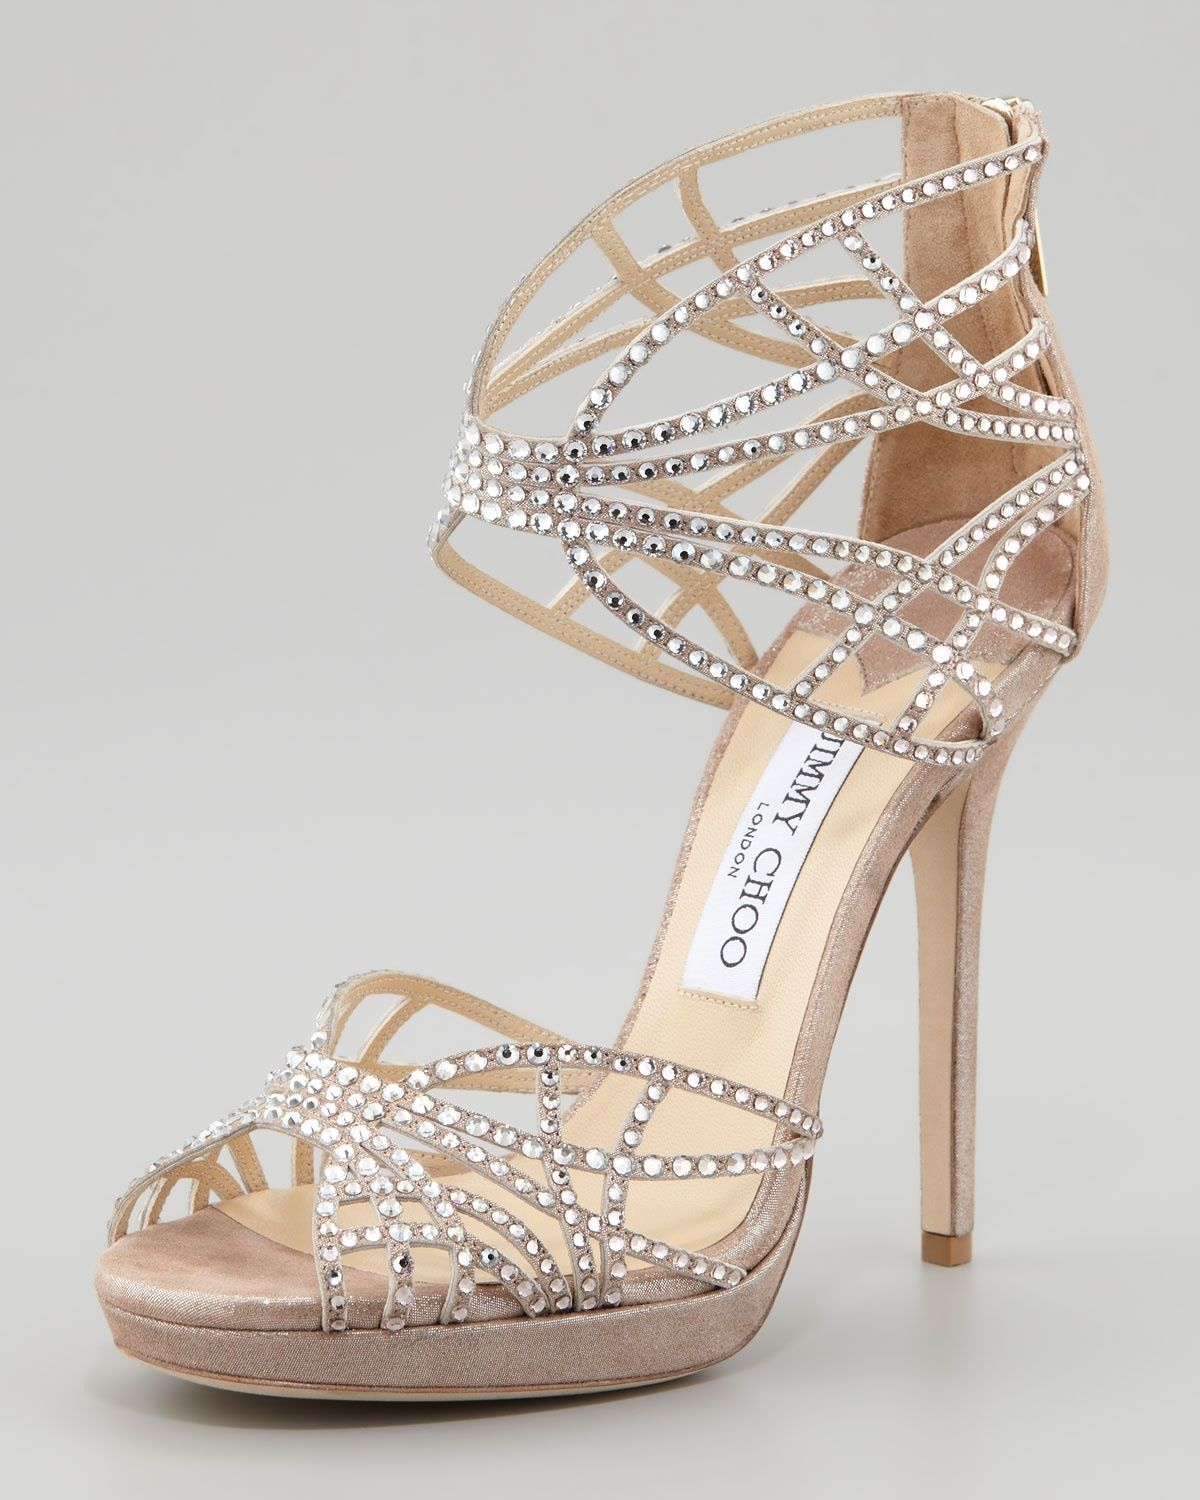 020dd67b1d2 Jimmy Choo | Get in my closet in 2019 | Prom shoes, Shoes ...